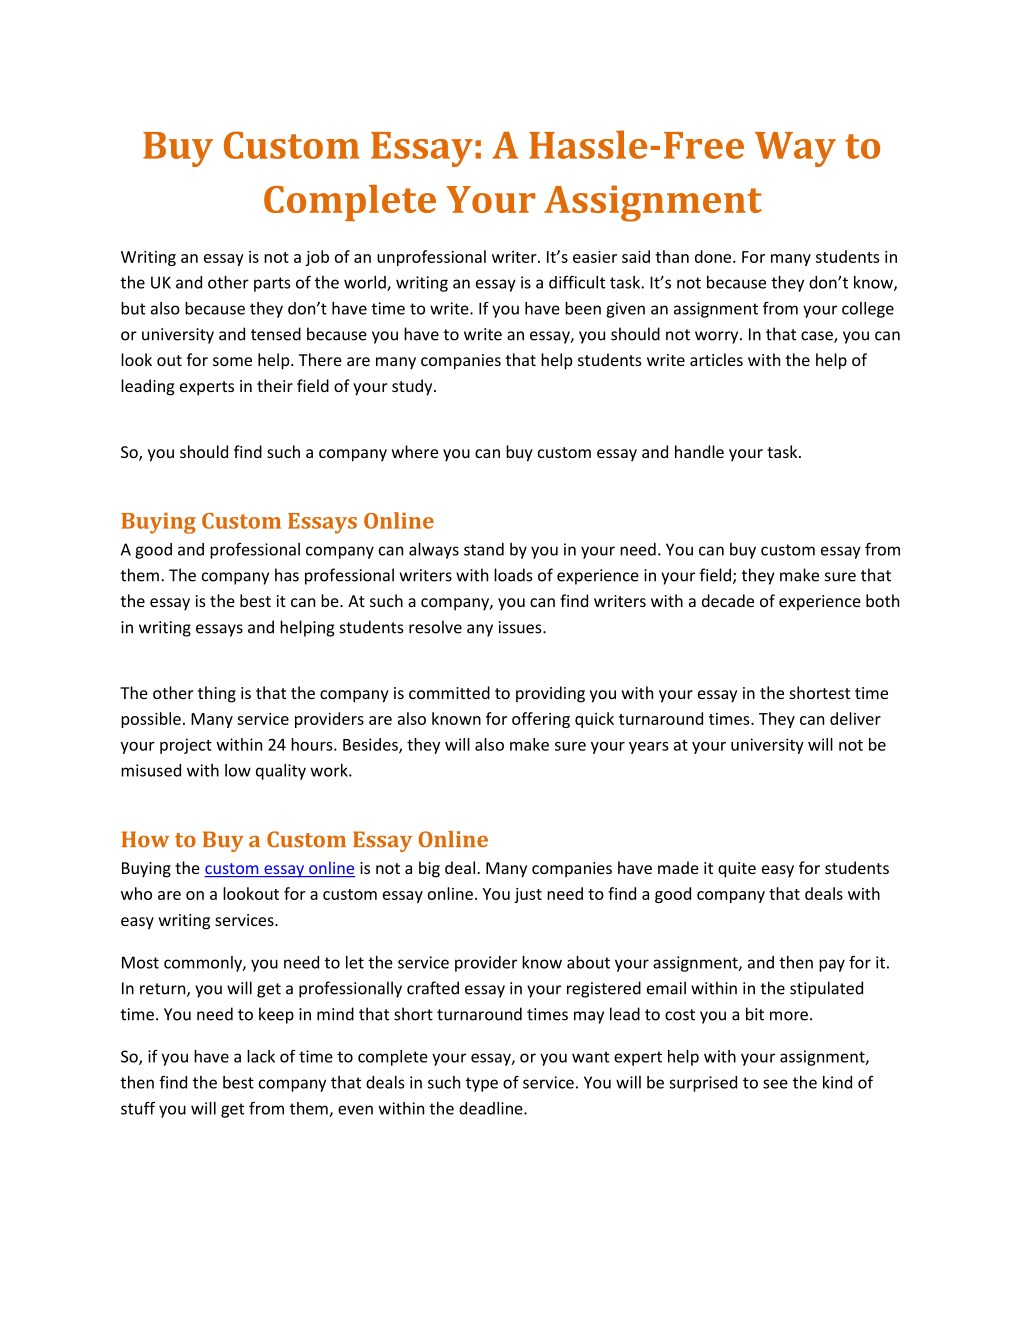 002 Essay Example Buy Custom Hassle Free Way To Complete L Order Incredible Online Full